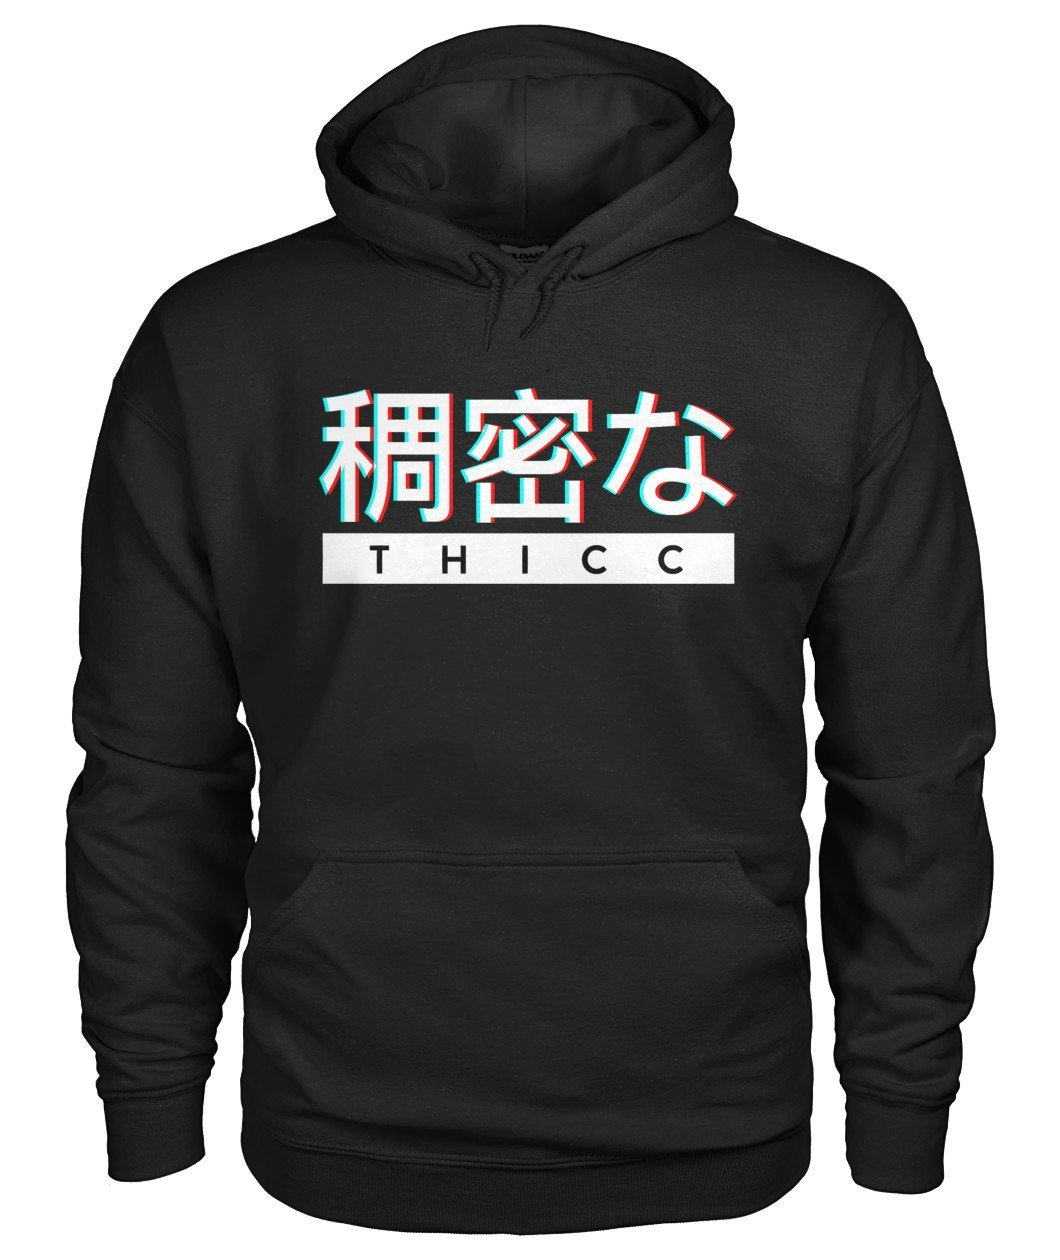 Discover Cool Aesthetic Japanese Thicc Logo Shirt